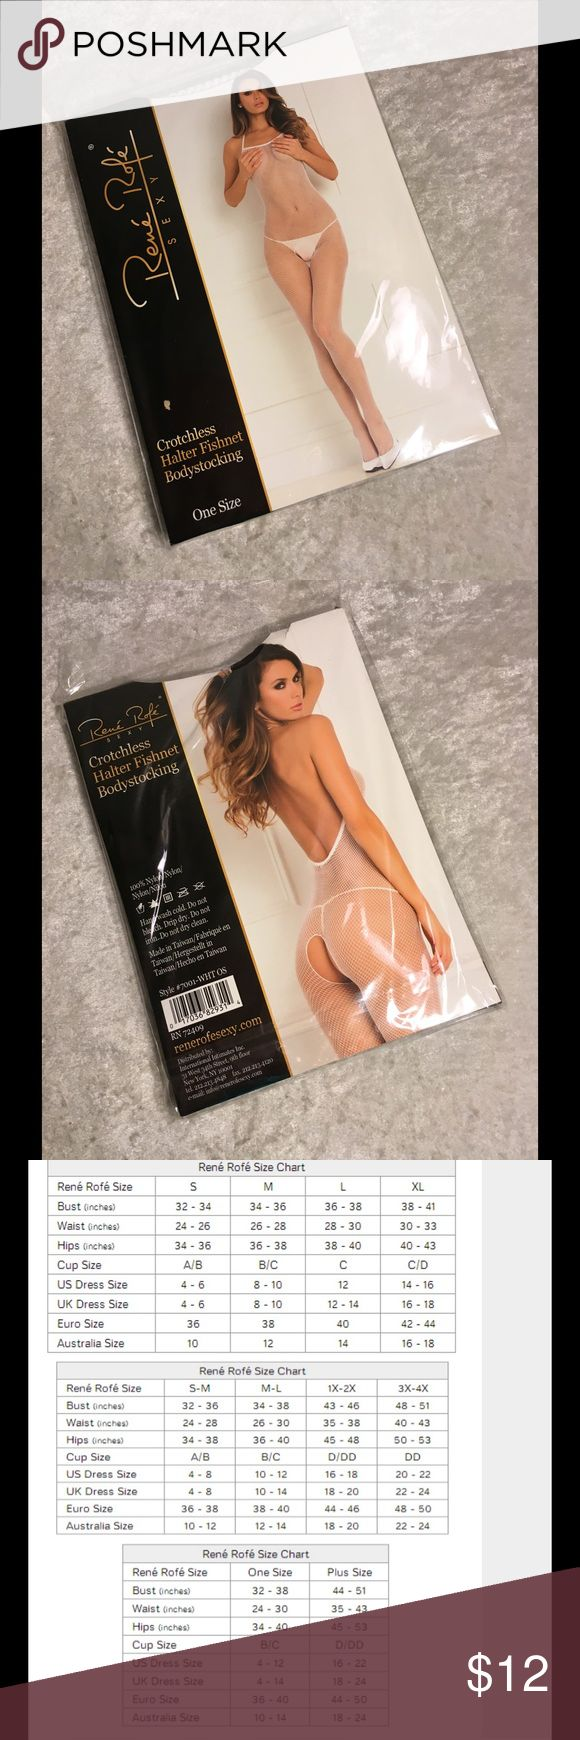 Rene Rofe Crotchless Fishnet Bodystocking 90-160 Brand New Rene Rofe Fishnet Bodystocking  Fits size 90-160lbs ⚜fishnet ⚜Crotchless ⚜great for a bridal gift, bachelorette gift and or wedding gift  ⚜soft comfy material 100% nylon   Lingerie Bodystocking stocking sexy  Not Victoria Secret or Fredrick's of Hollywood Rene Rofe Pants Leggings